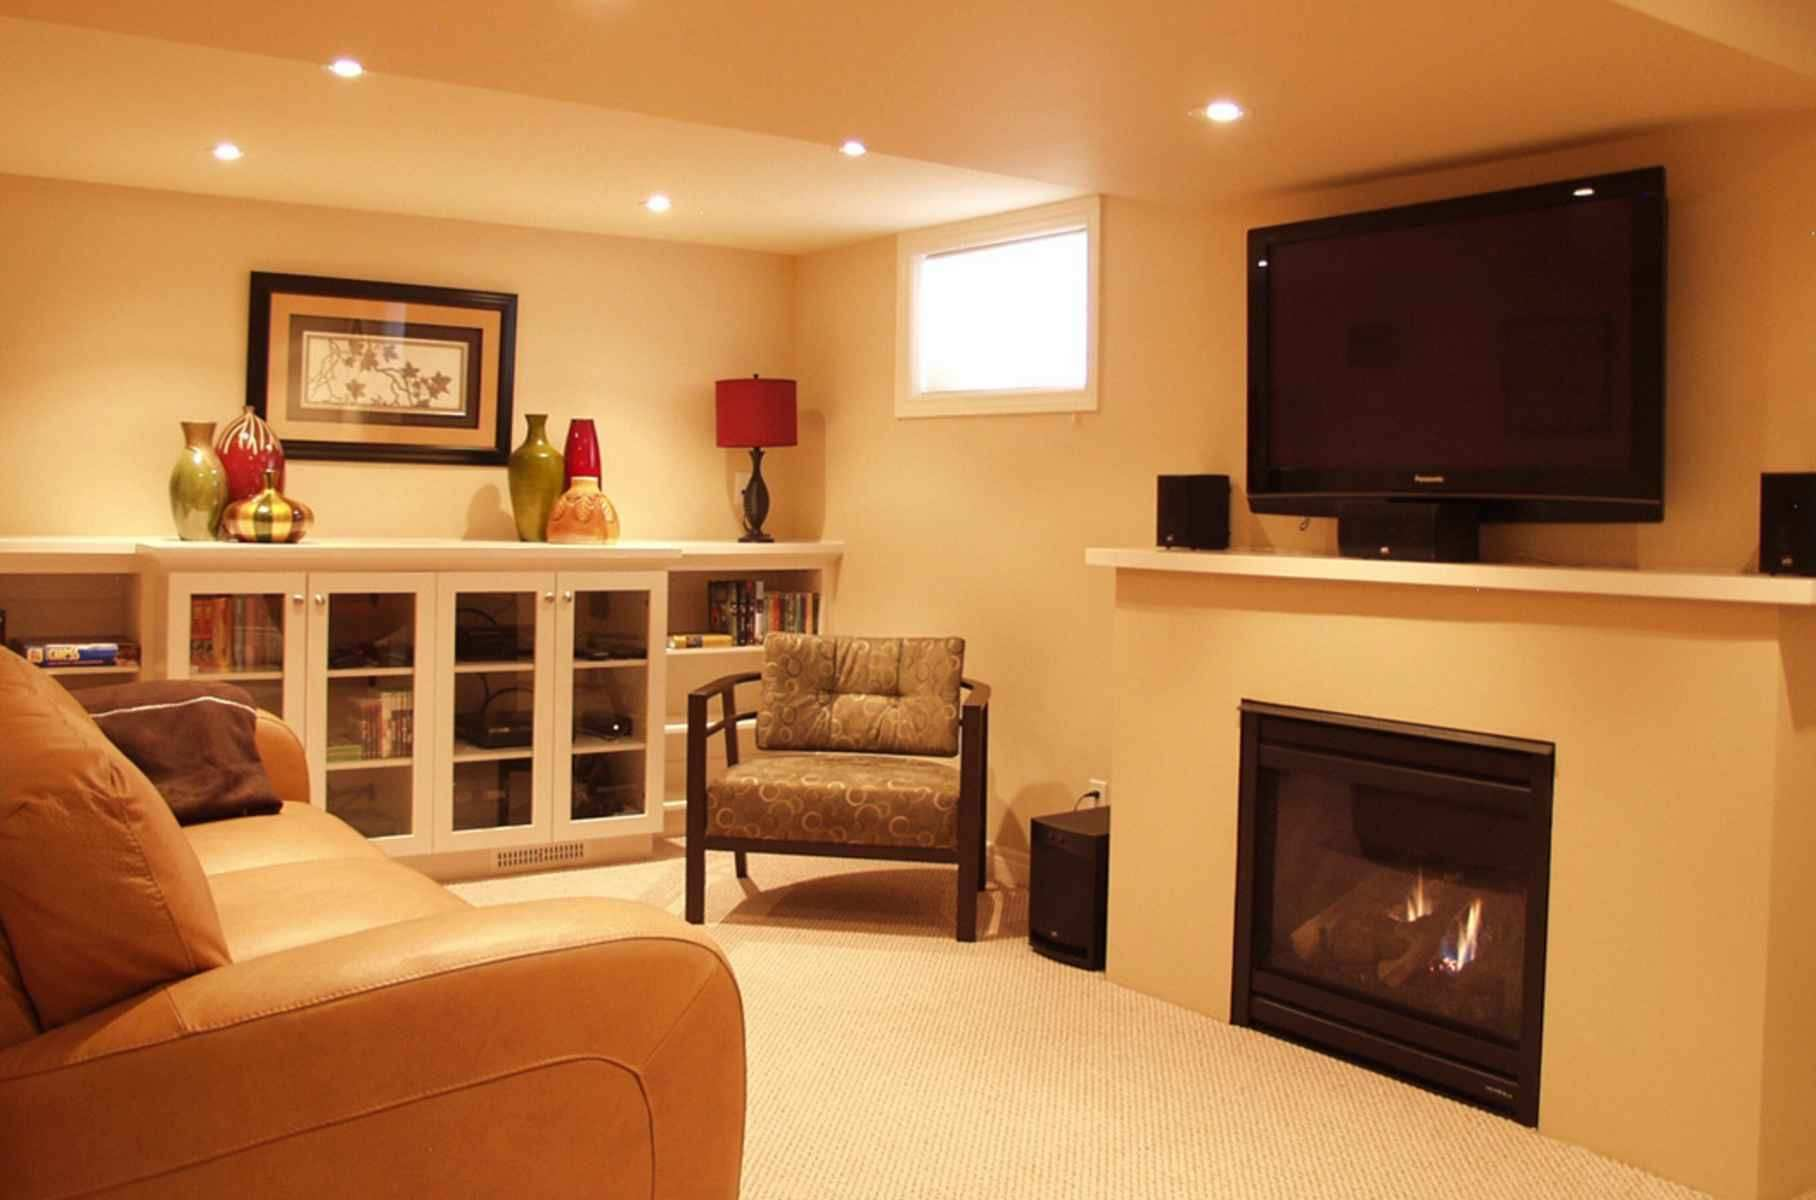 Fireplace & Accessories Cool Fireplace Ideas Living Room With